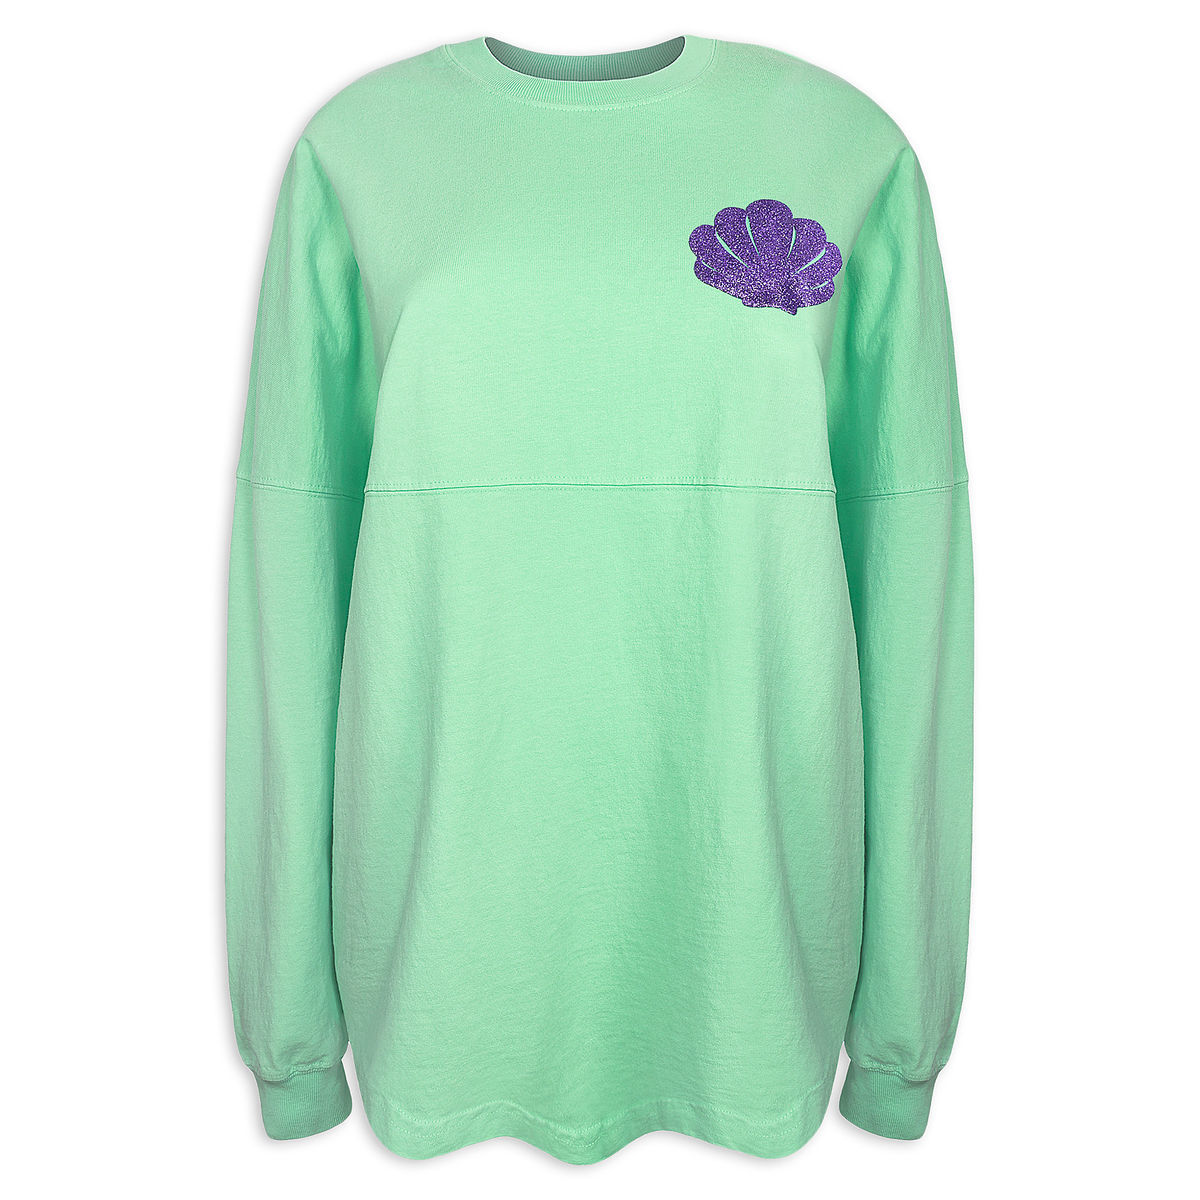 Product Image Of Ariel Spirit Jersey For Adults